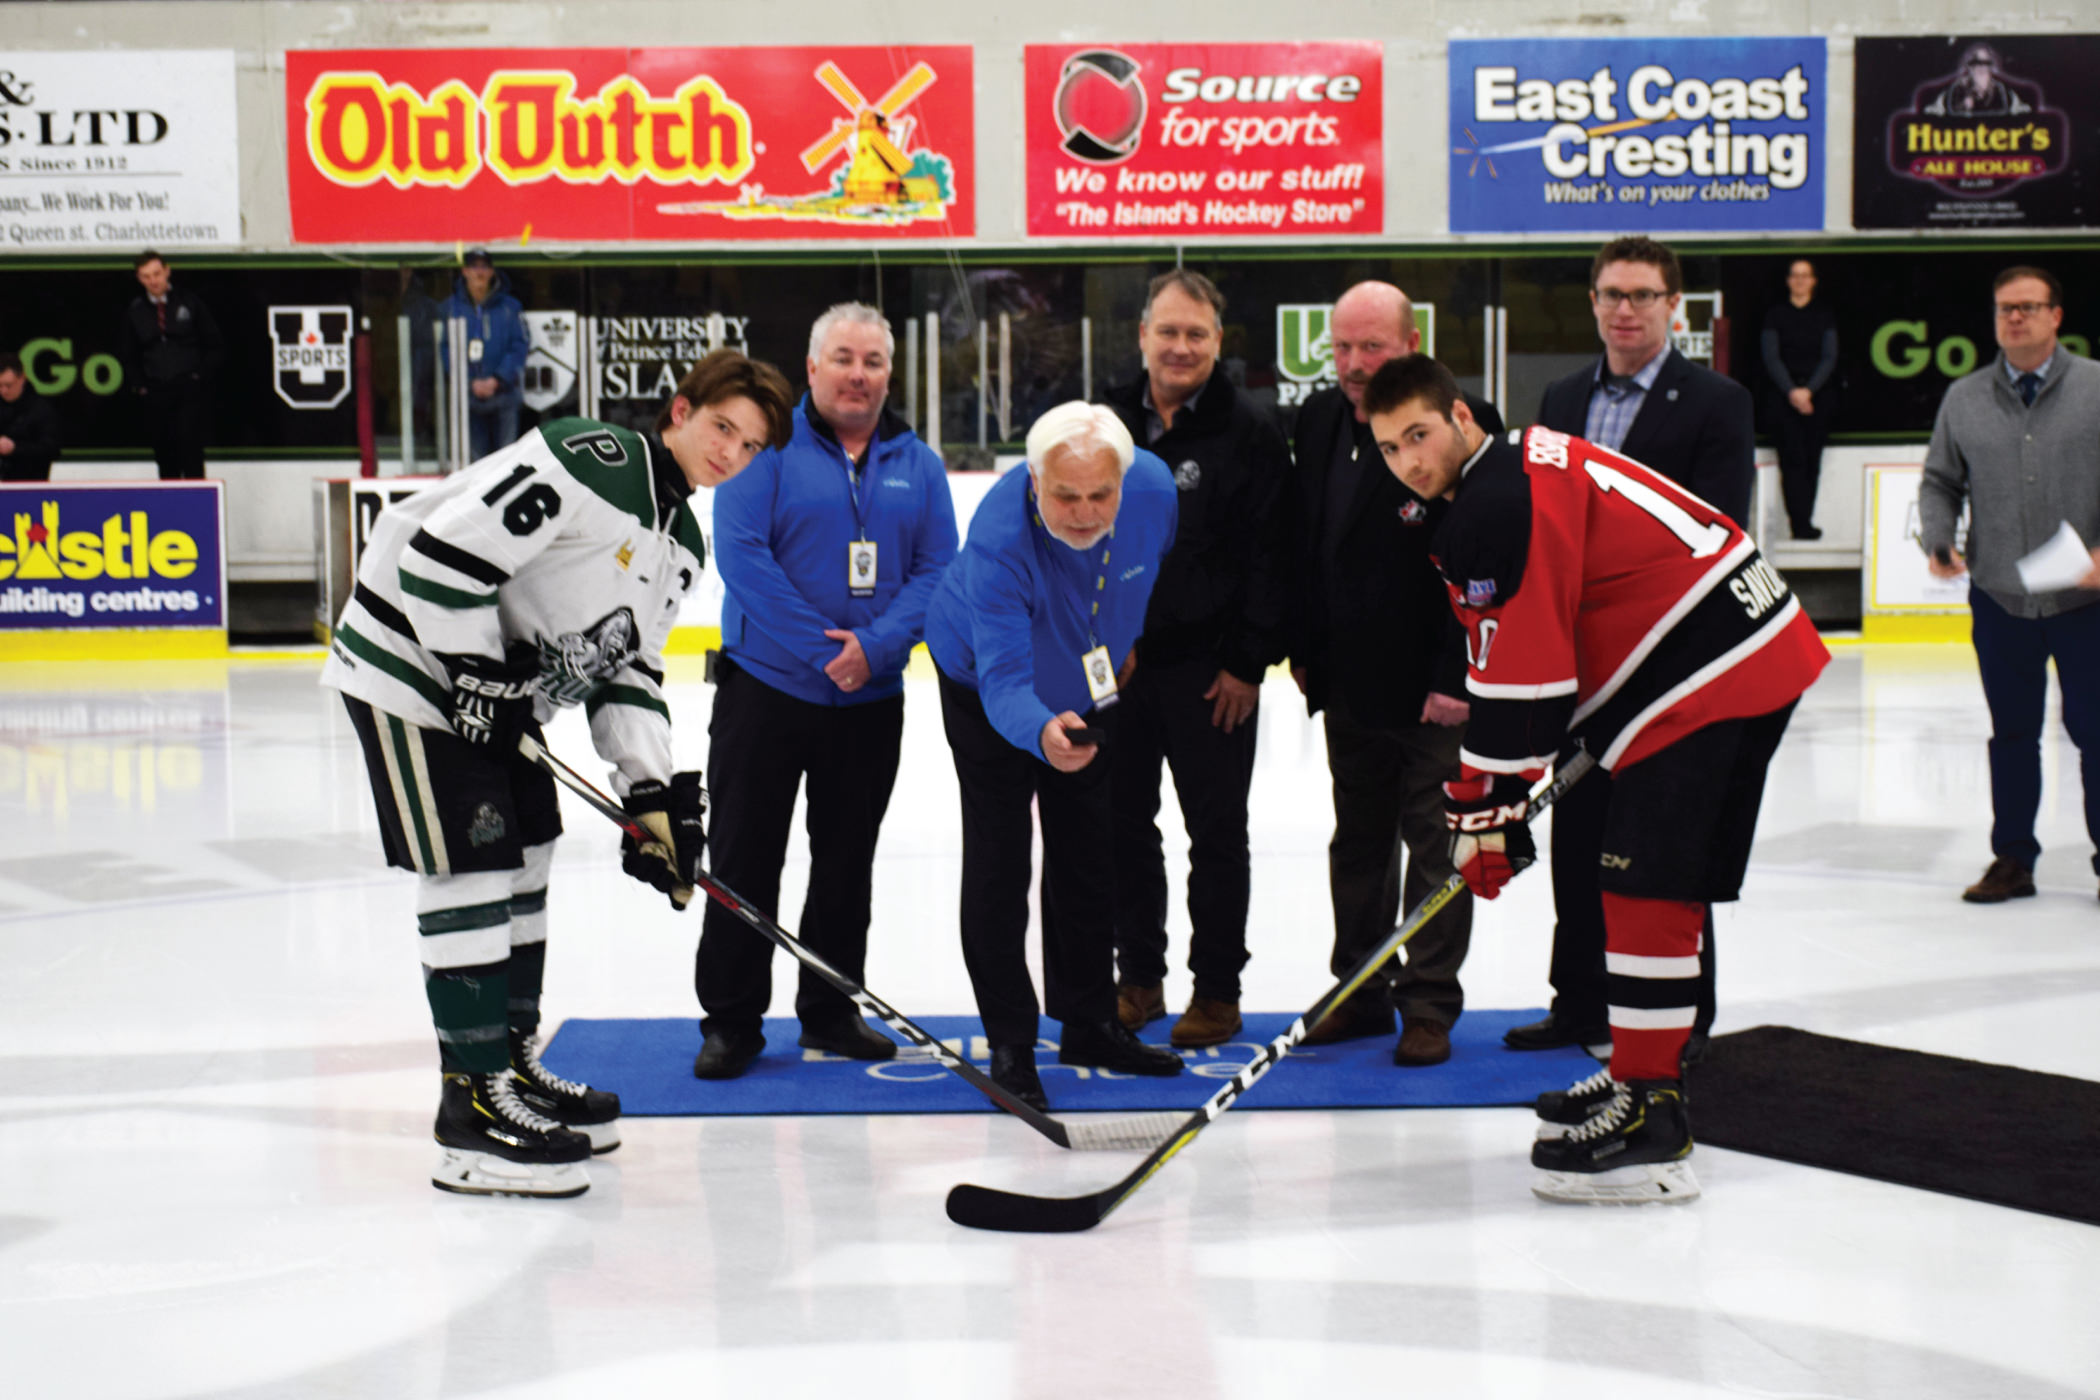 The Atlantic Hockey Championships last month in Charlottetown, PEI.